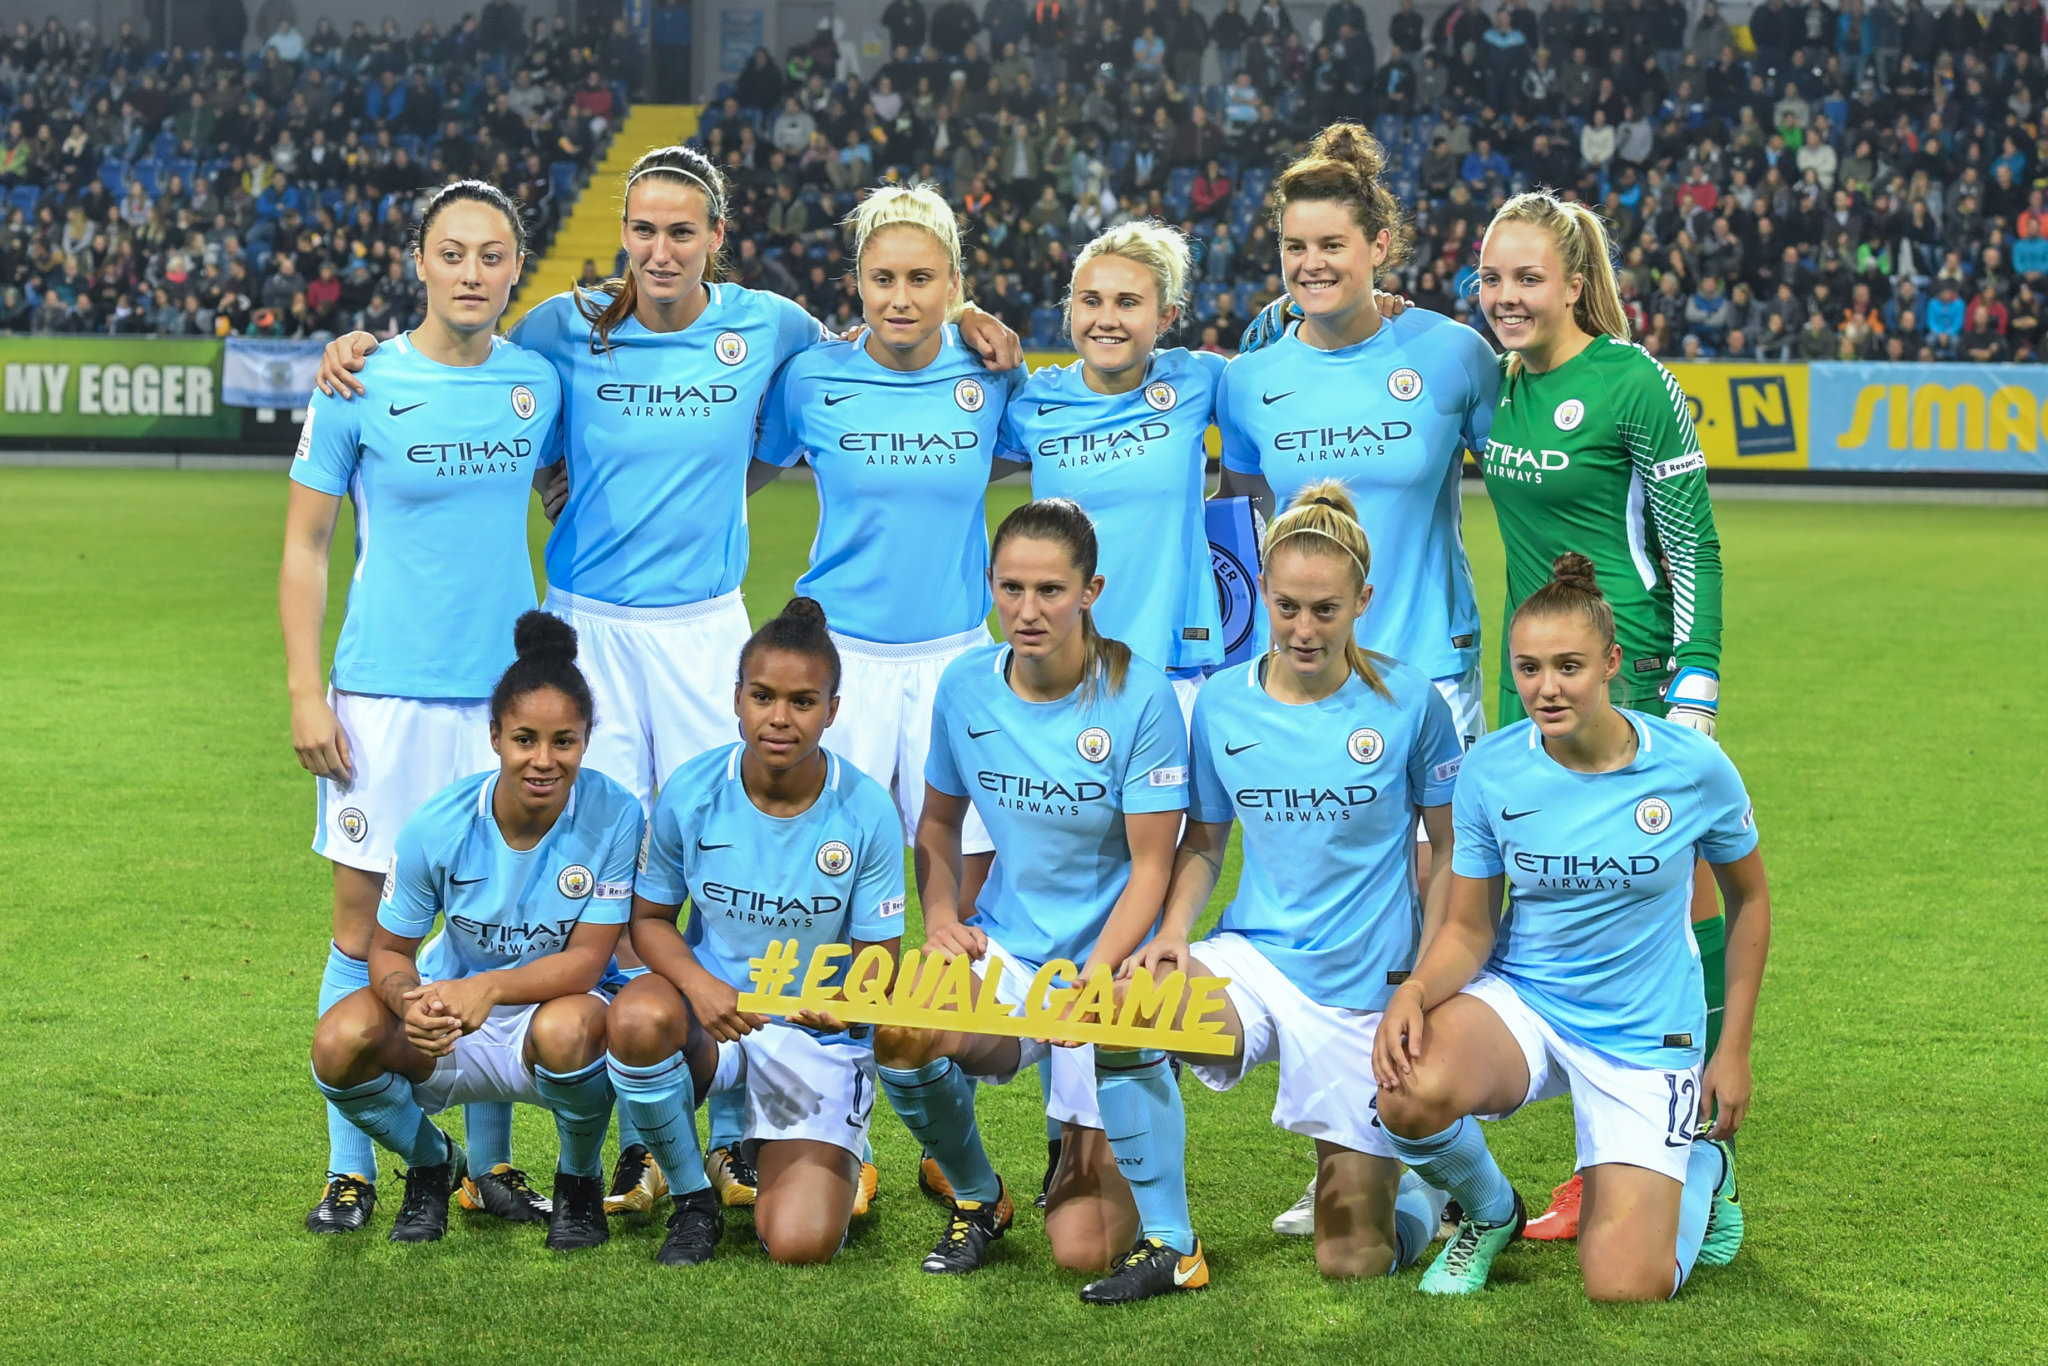 Manchester City women in 2017